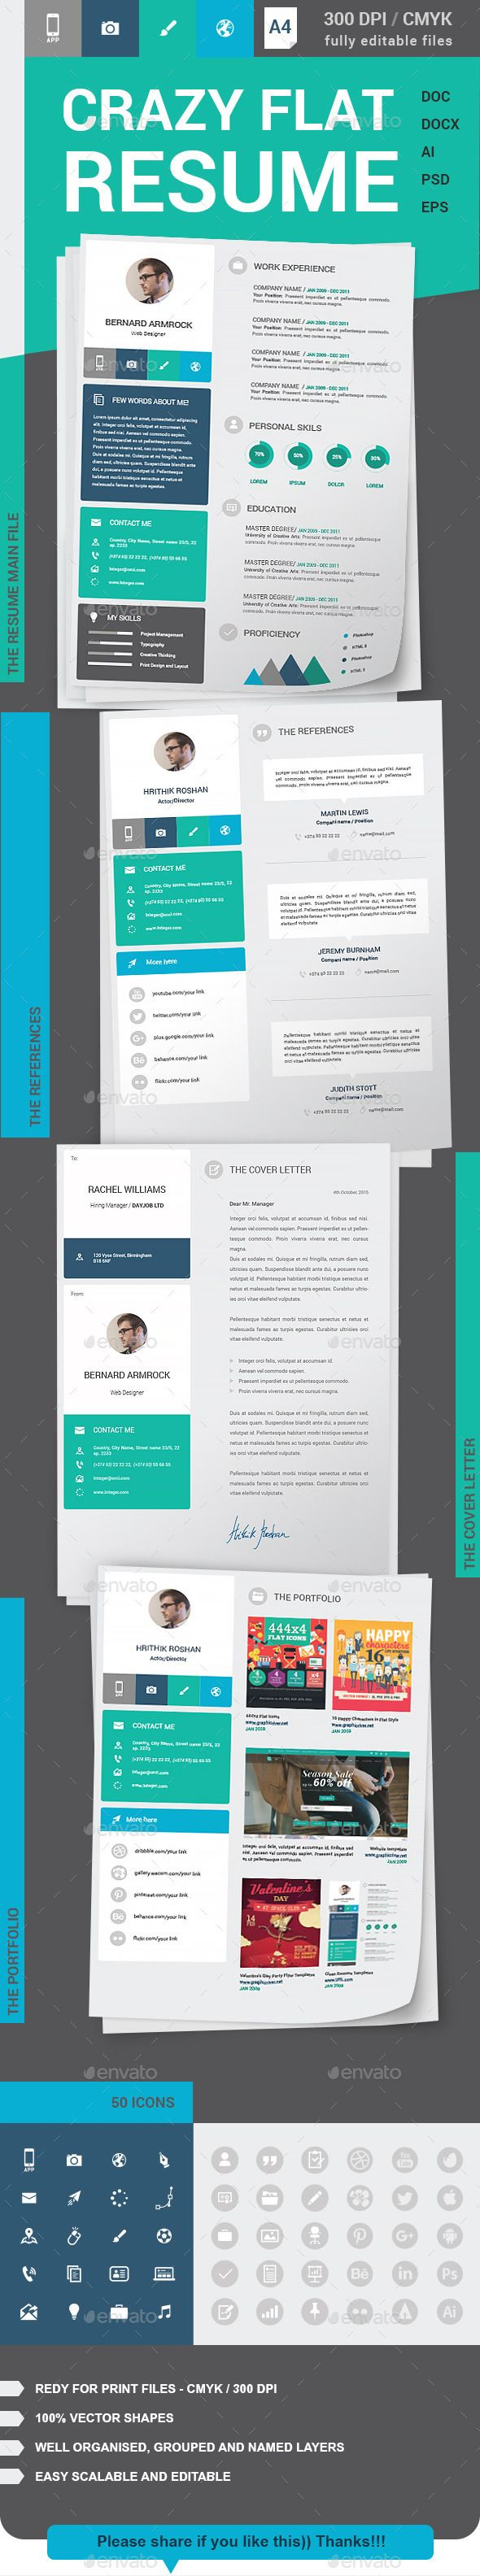 resume Flat Resume Design crazy flat resume cv template and font logo resume